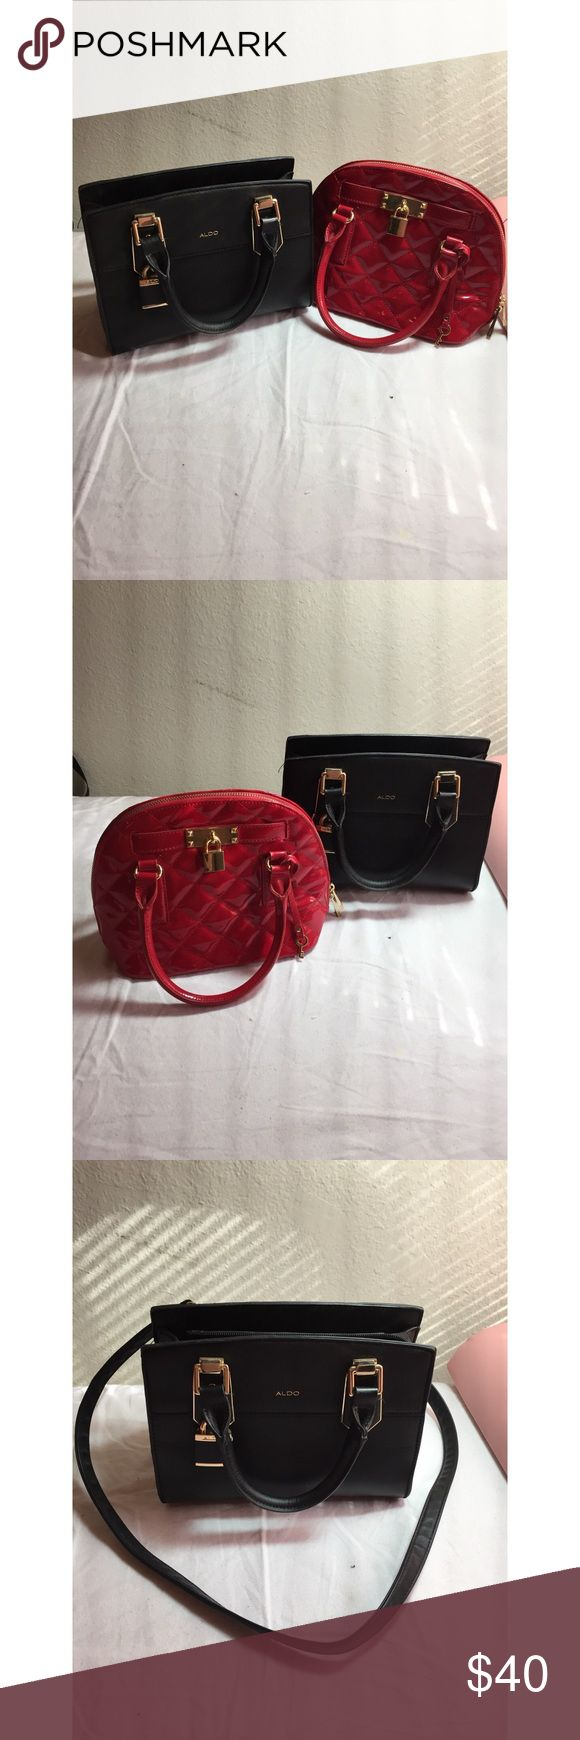 Aldo Purse bundle deal This bundle is NONNEGOTIABLE!  Perfect for Christmas gifts  This bundle includes the Aldo black mini bag & also the Aldo red mini bag  Both bags have either lightly used or never worn/zero staining on both bags. Two bags for the price of one Aldo Bags Mini Bags